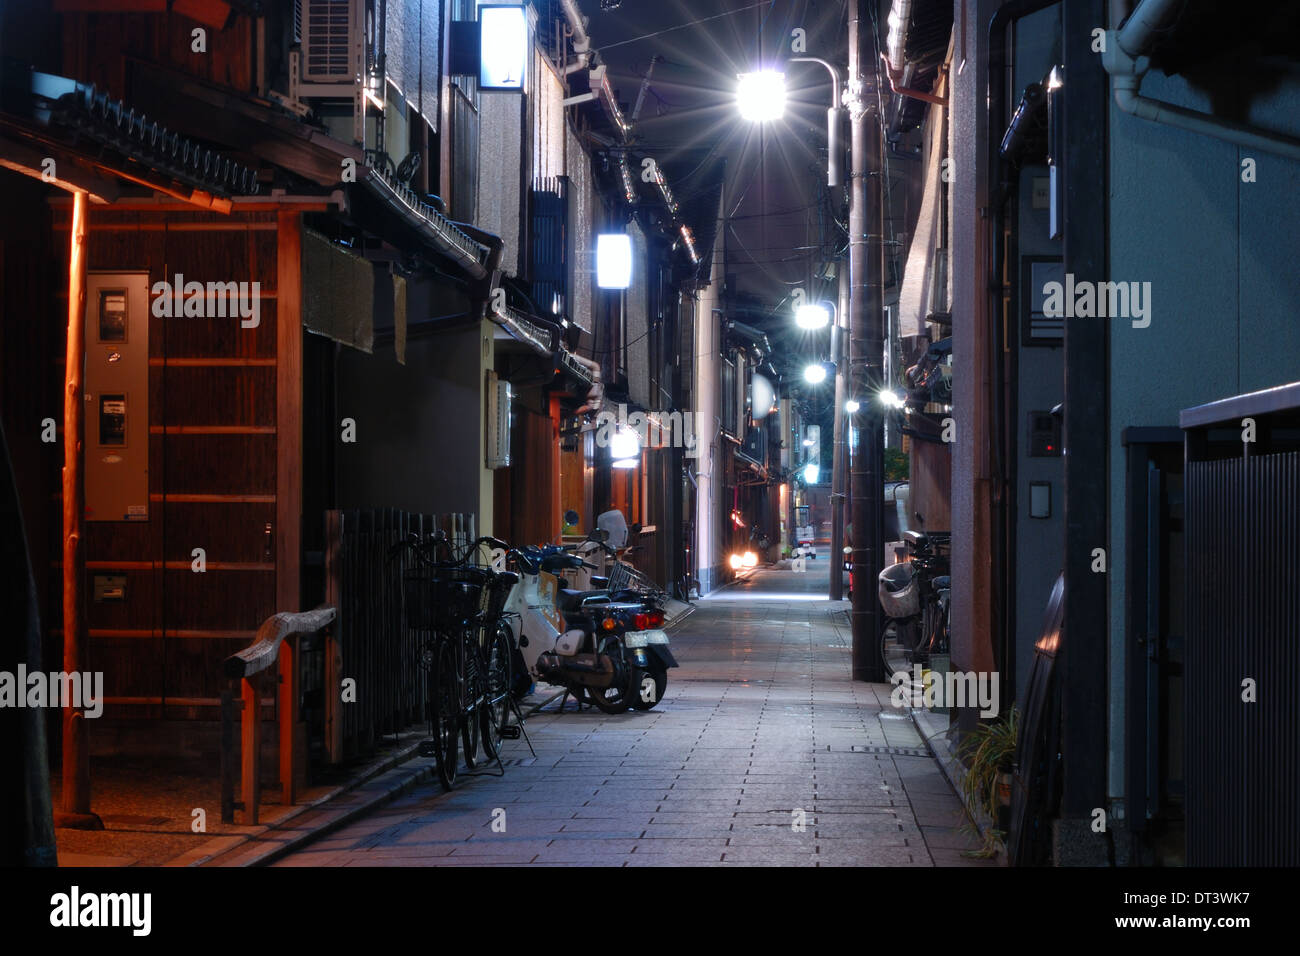 Kyoto night street  at well-known Gion area - Stock Image